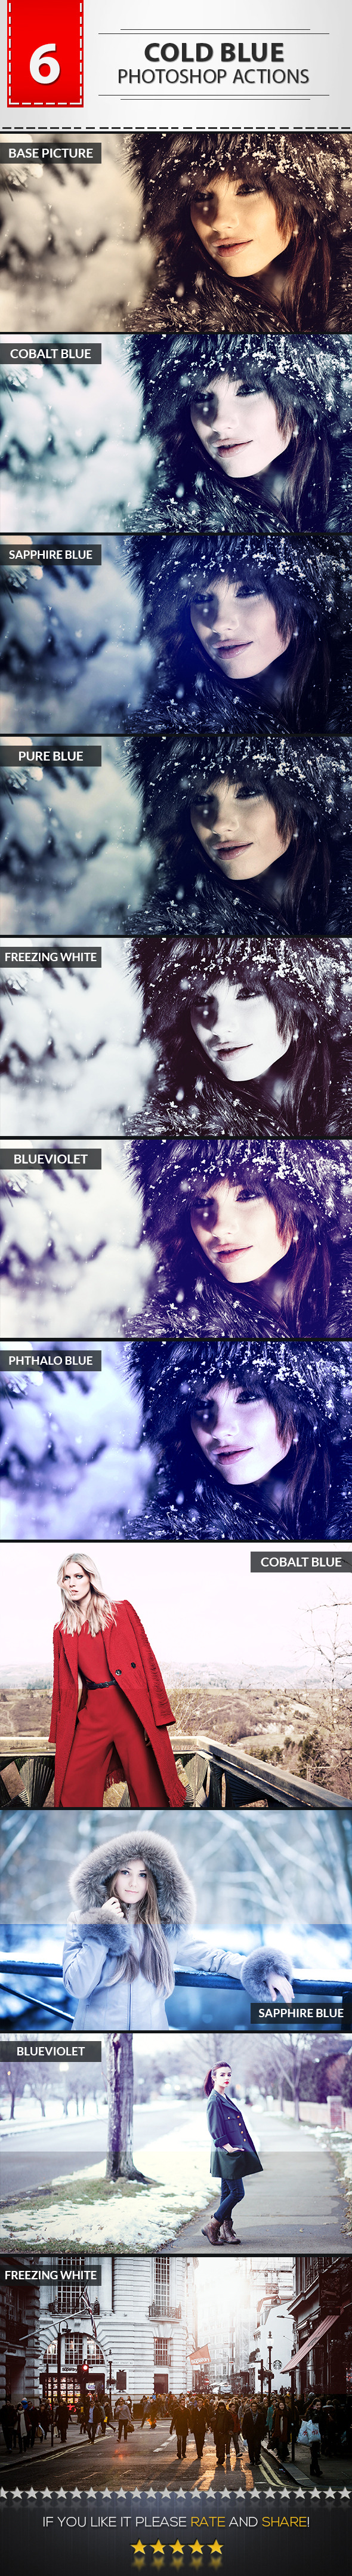 6 Cold Blue Photoshop Actions - Photo Effects Actions